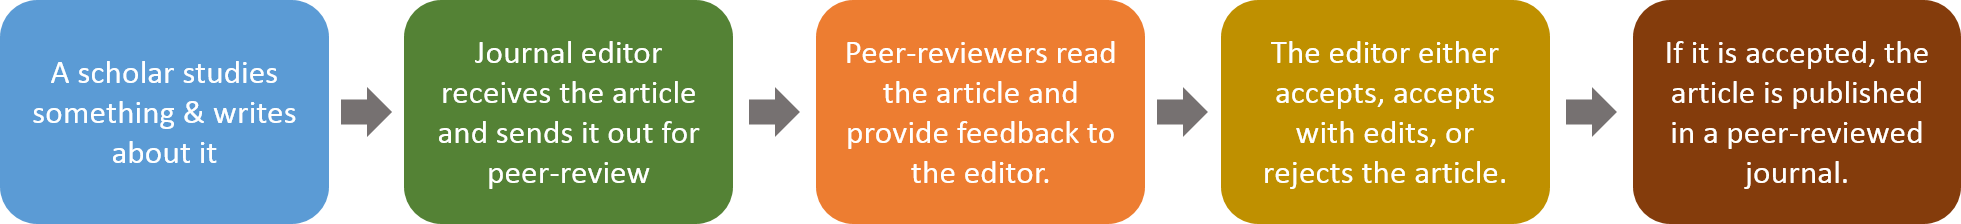 A scholar studies something & writes about it > Journal editor receives the article and sends it out for peer-review > Peer-reviewers read the article and provide feedback to the editor > The editor either accepts, accepts with edits, or rejects the article > If it is accepted, the article is published in a peer-reviewed journal.